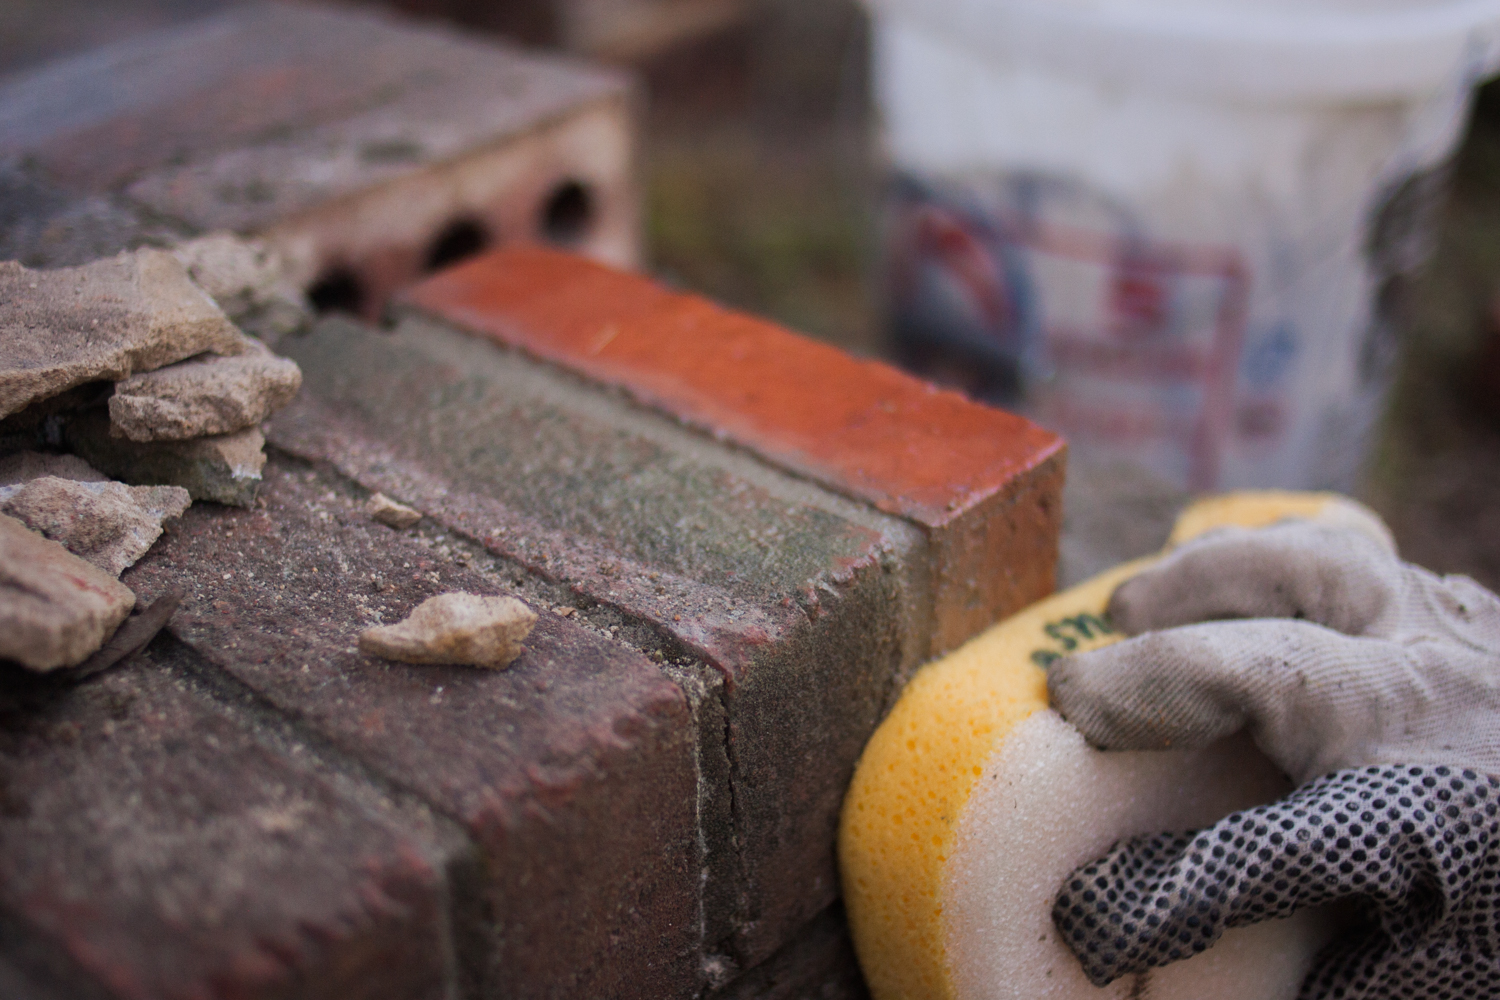 wiping excess mortar away from brick face with a grout sponge